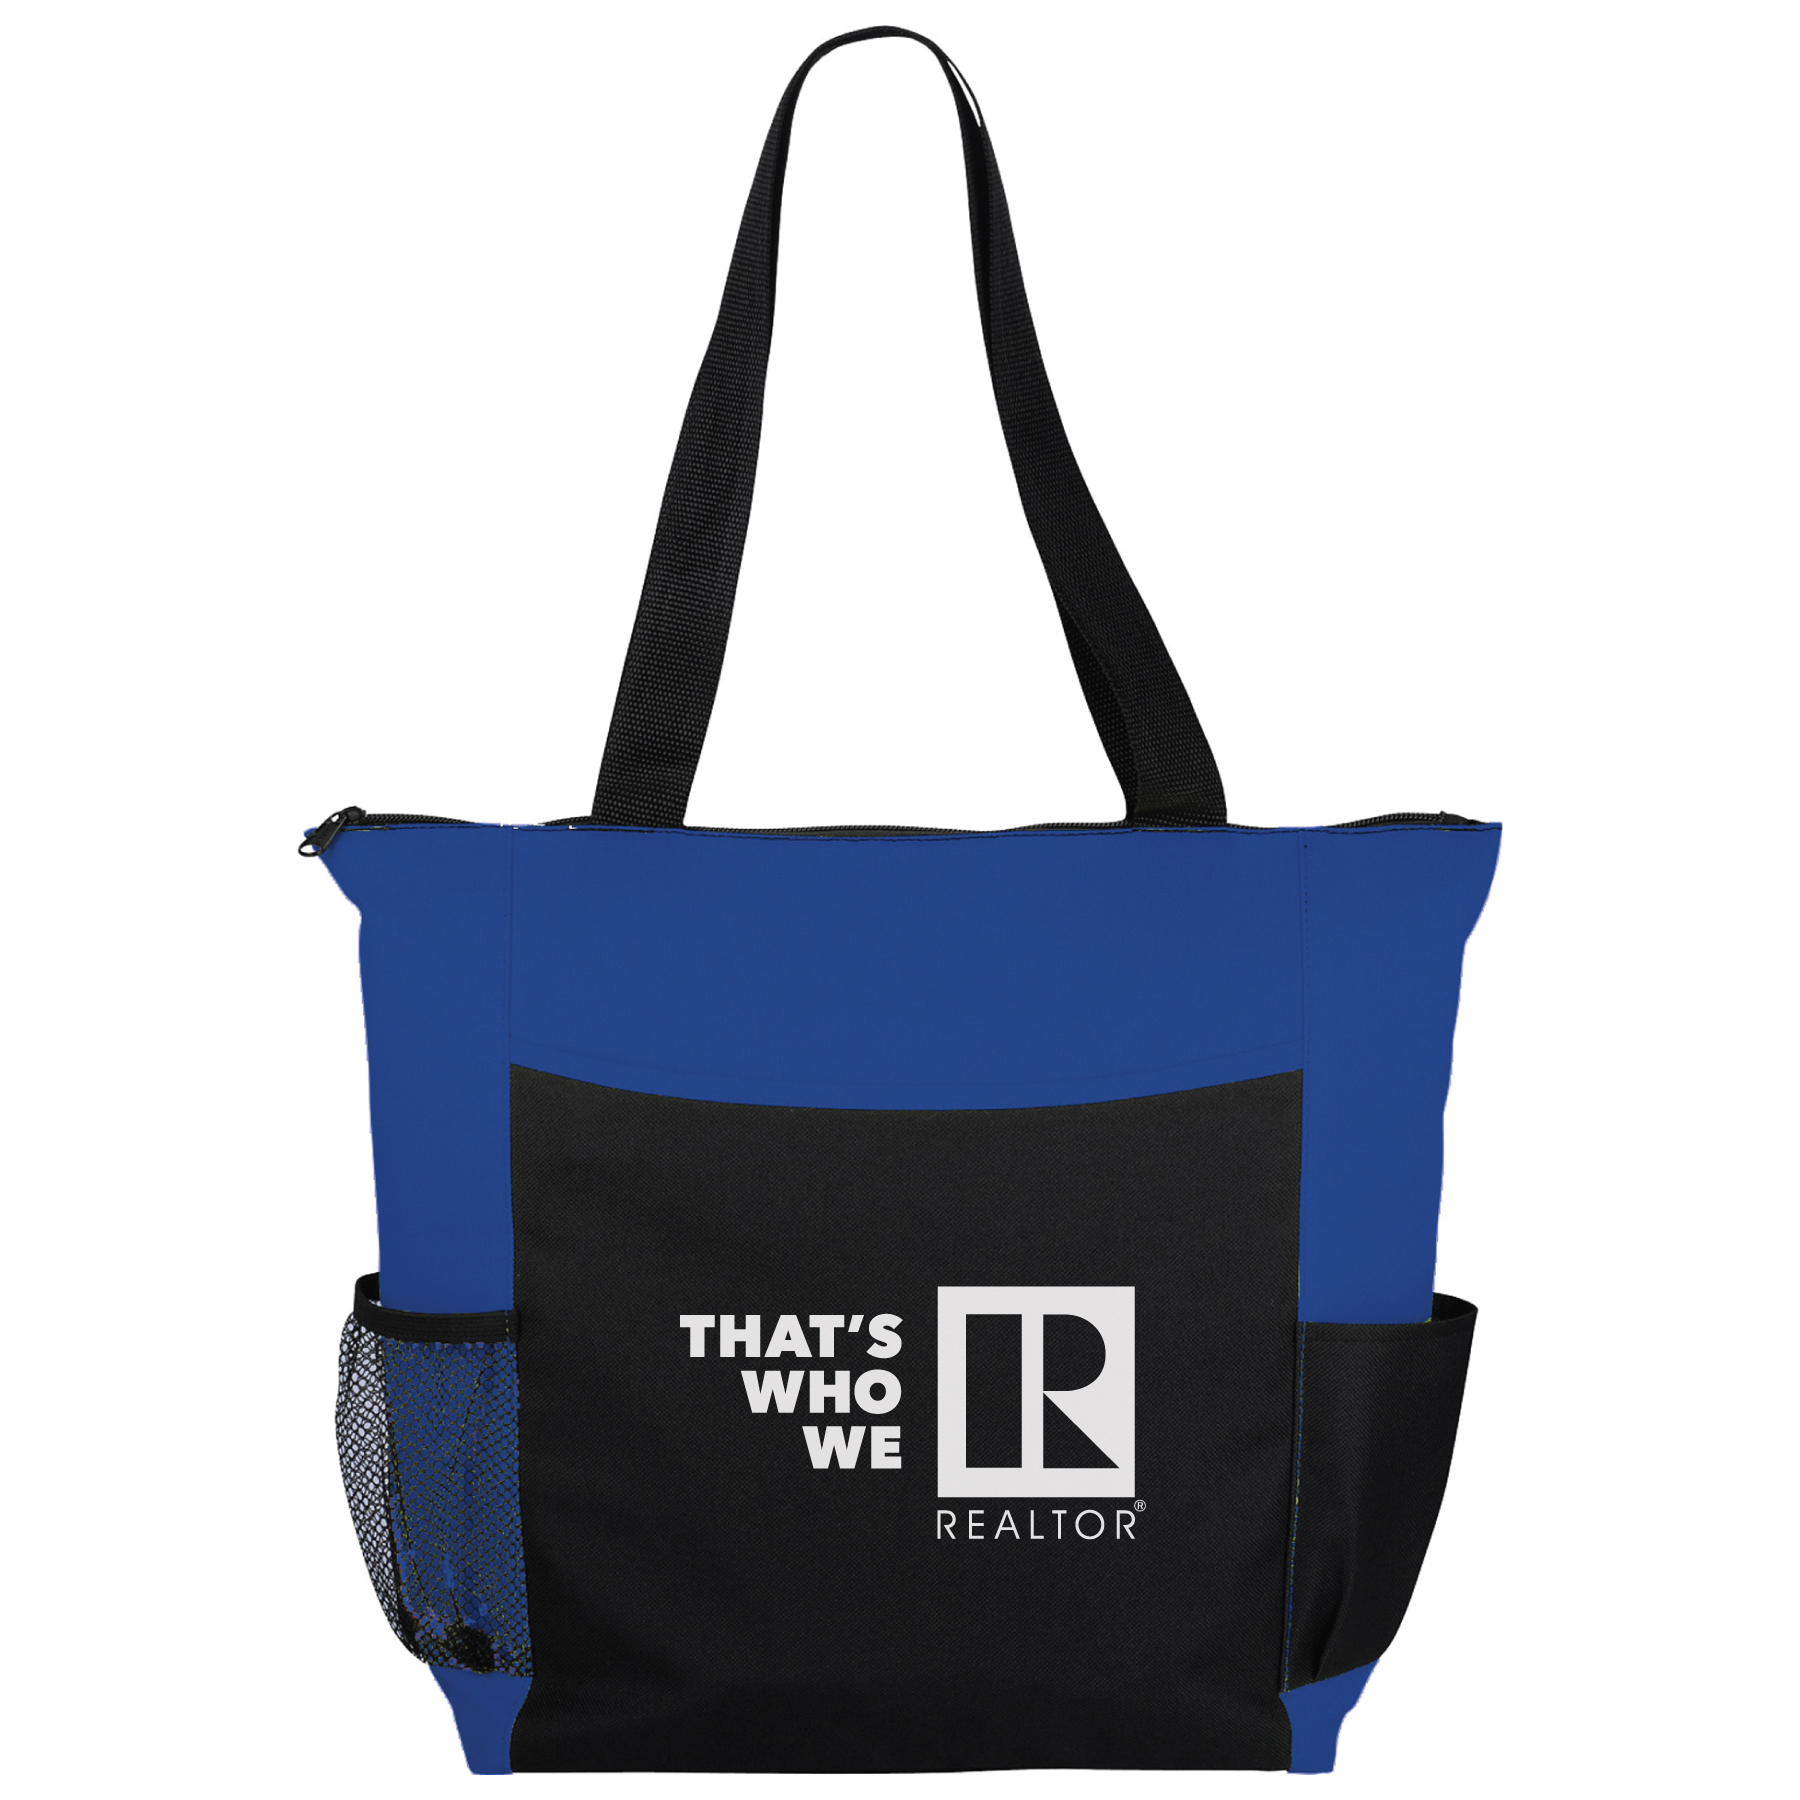 Canvas Bag with Zipper Closure & Bottle Holder RTS4002,Totes,Bags,Straps,Satchels,Slings,